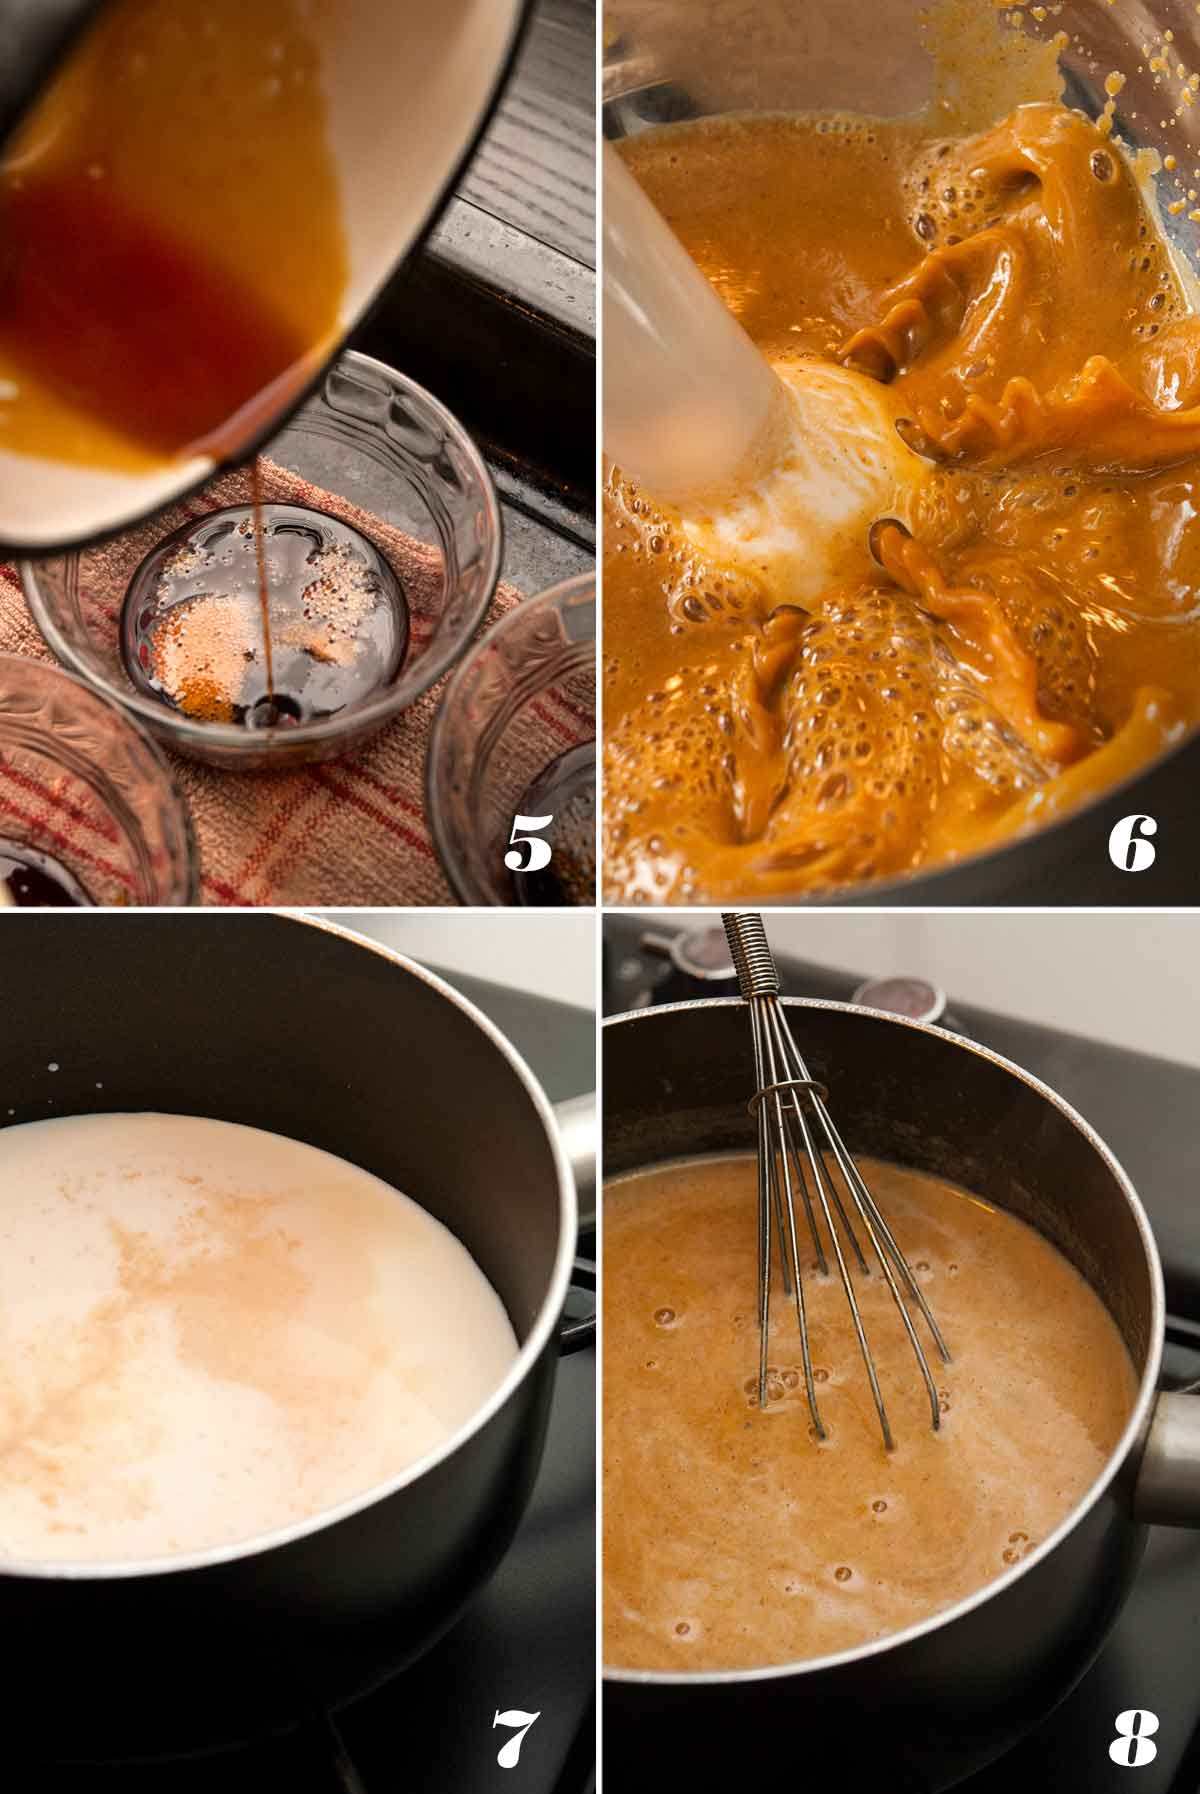 A collage of 4 numbered images showing how to make flan custard.